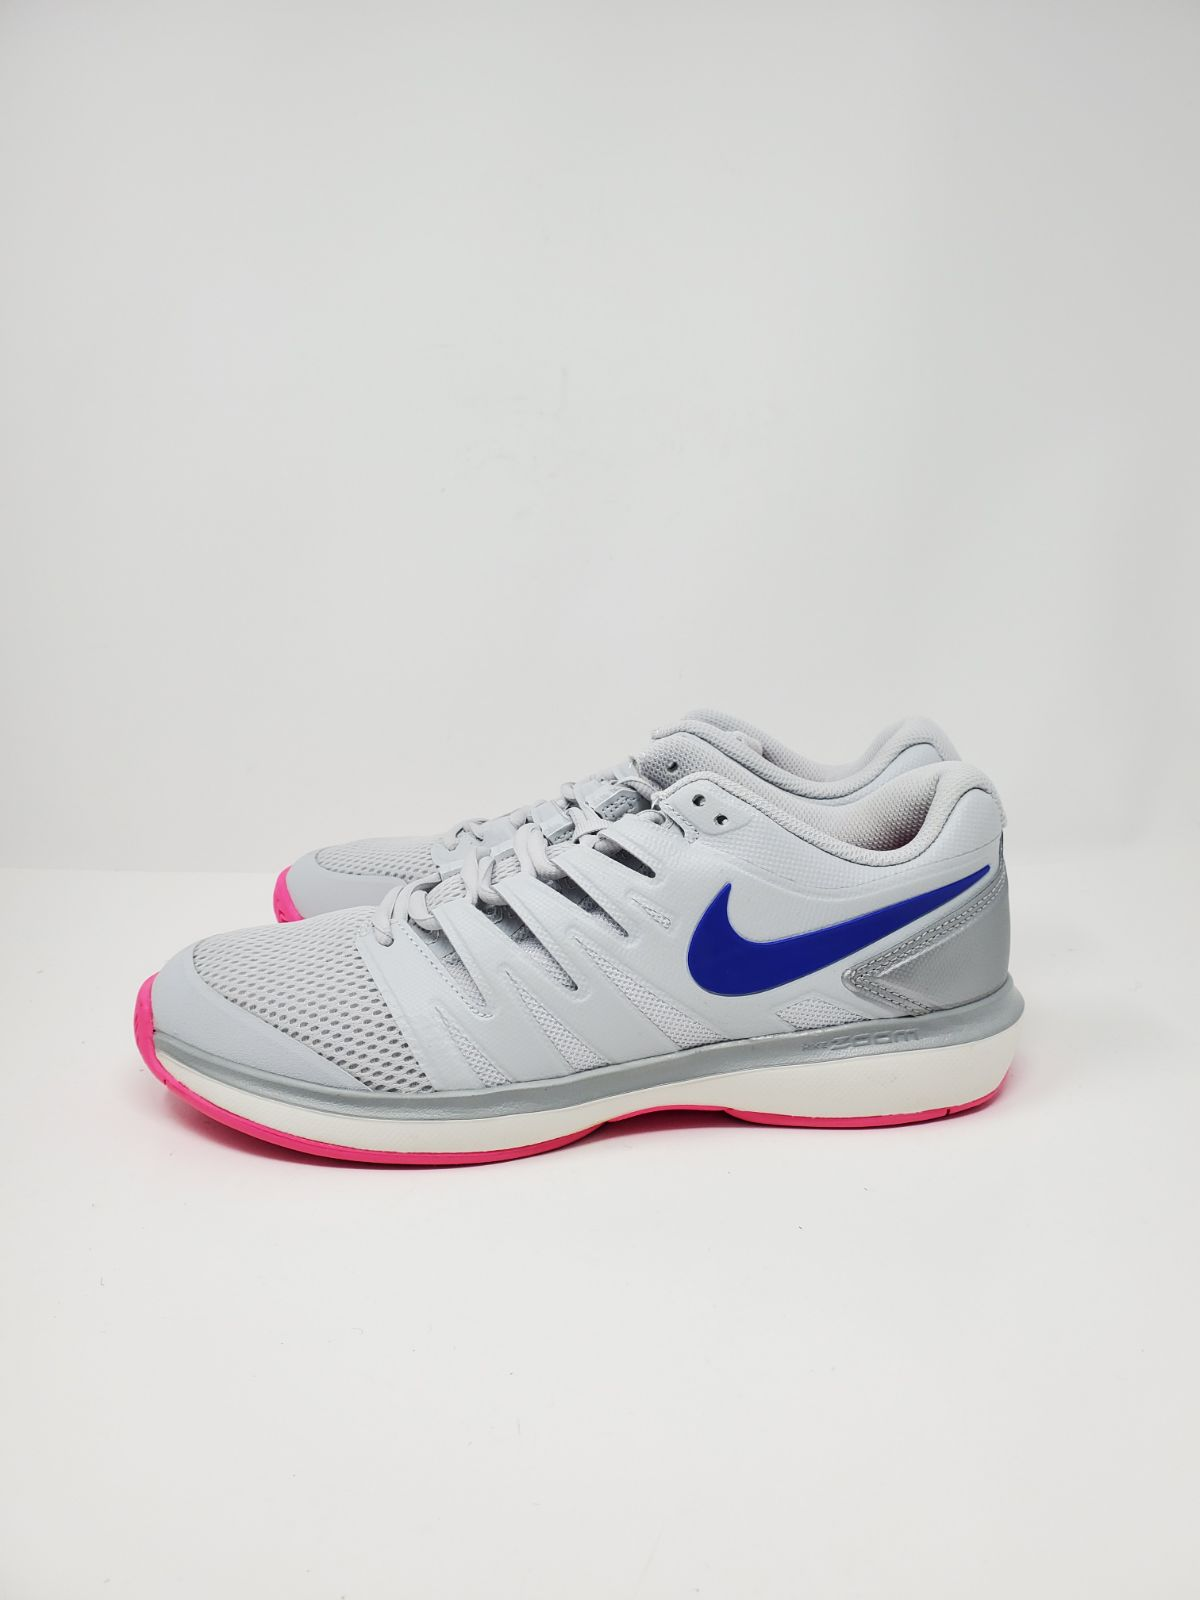 NEW NIKE TENNIS SHOES GREY BLUE PINK